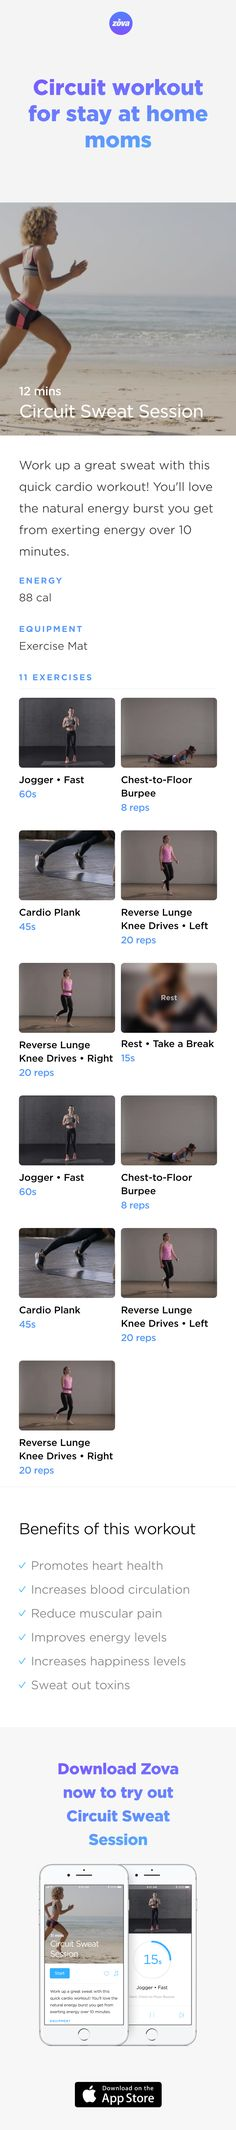 Take advantage of a sleeping baby with this super short but effective at-home circuit workout designed for moms. Take a timeout for your health, clear a spot in the lounge room and enjoy this easy and doable workout. You'll raise your heart rate, work your core and define your waist. #weightloss #workout #fitness #HIIT #fullbody #sweat #bodyweight #calories #athome #mom